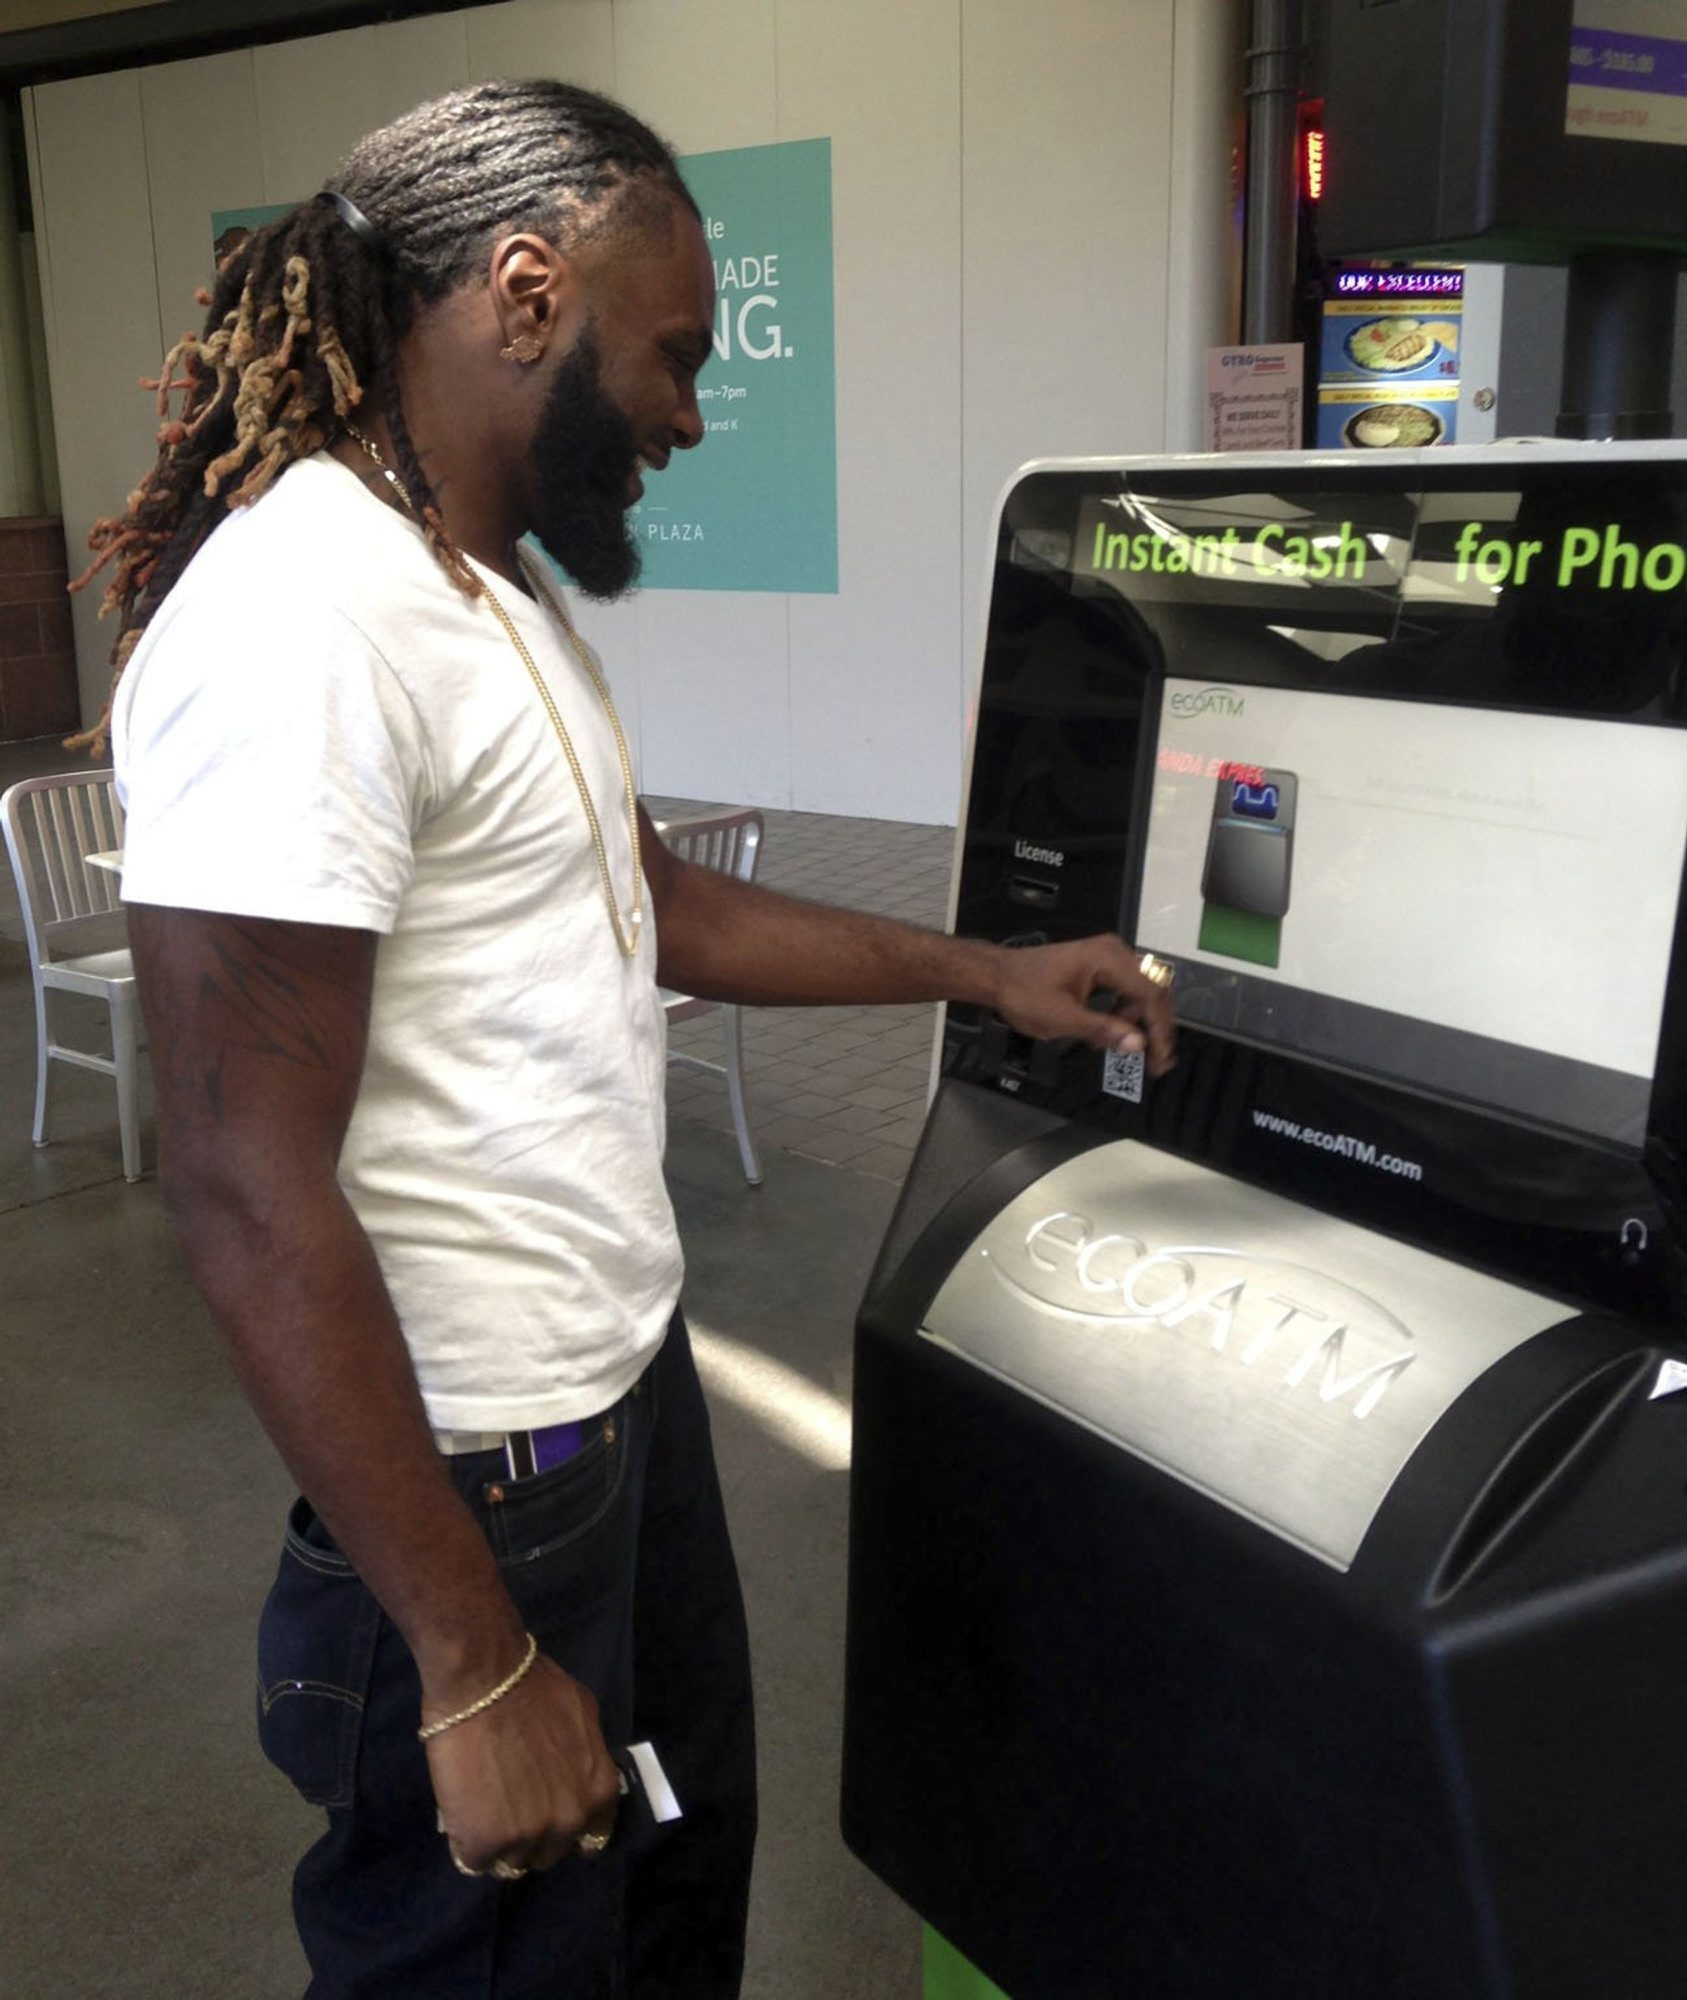 Marcellus Lang, a security guard at a sports bar in Sacramento, Calif., uses an ecoATM kiosk at a mall to exchange a used cellphone and an old iPod Touch for $59 in cash.